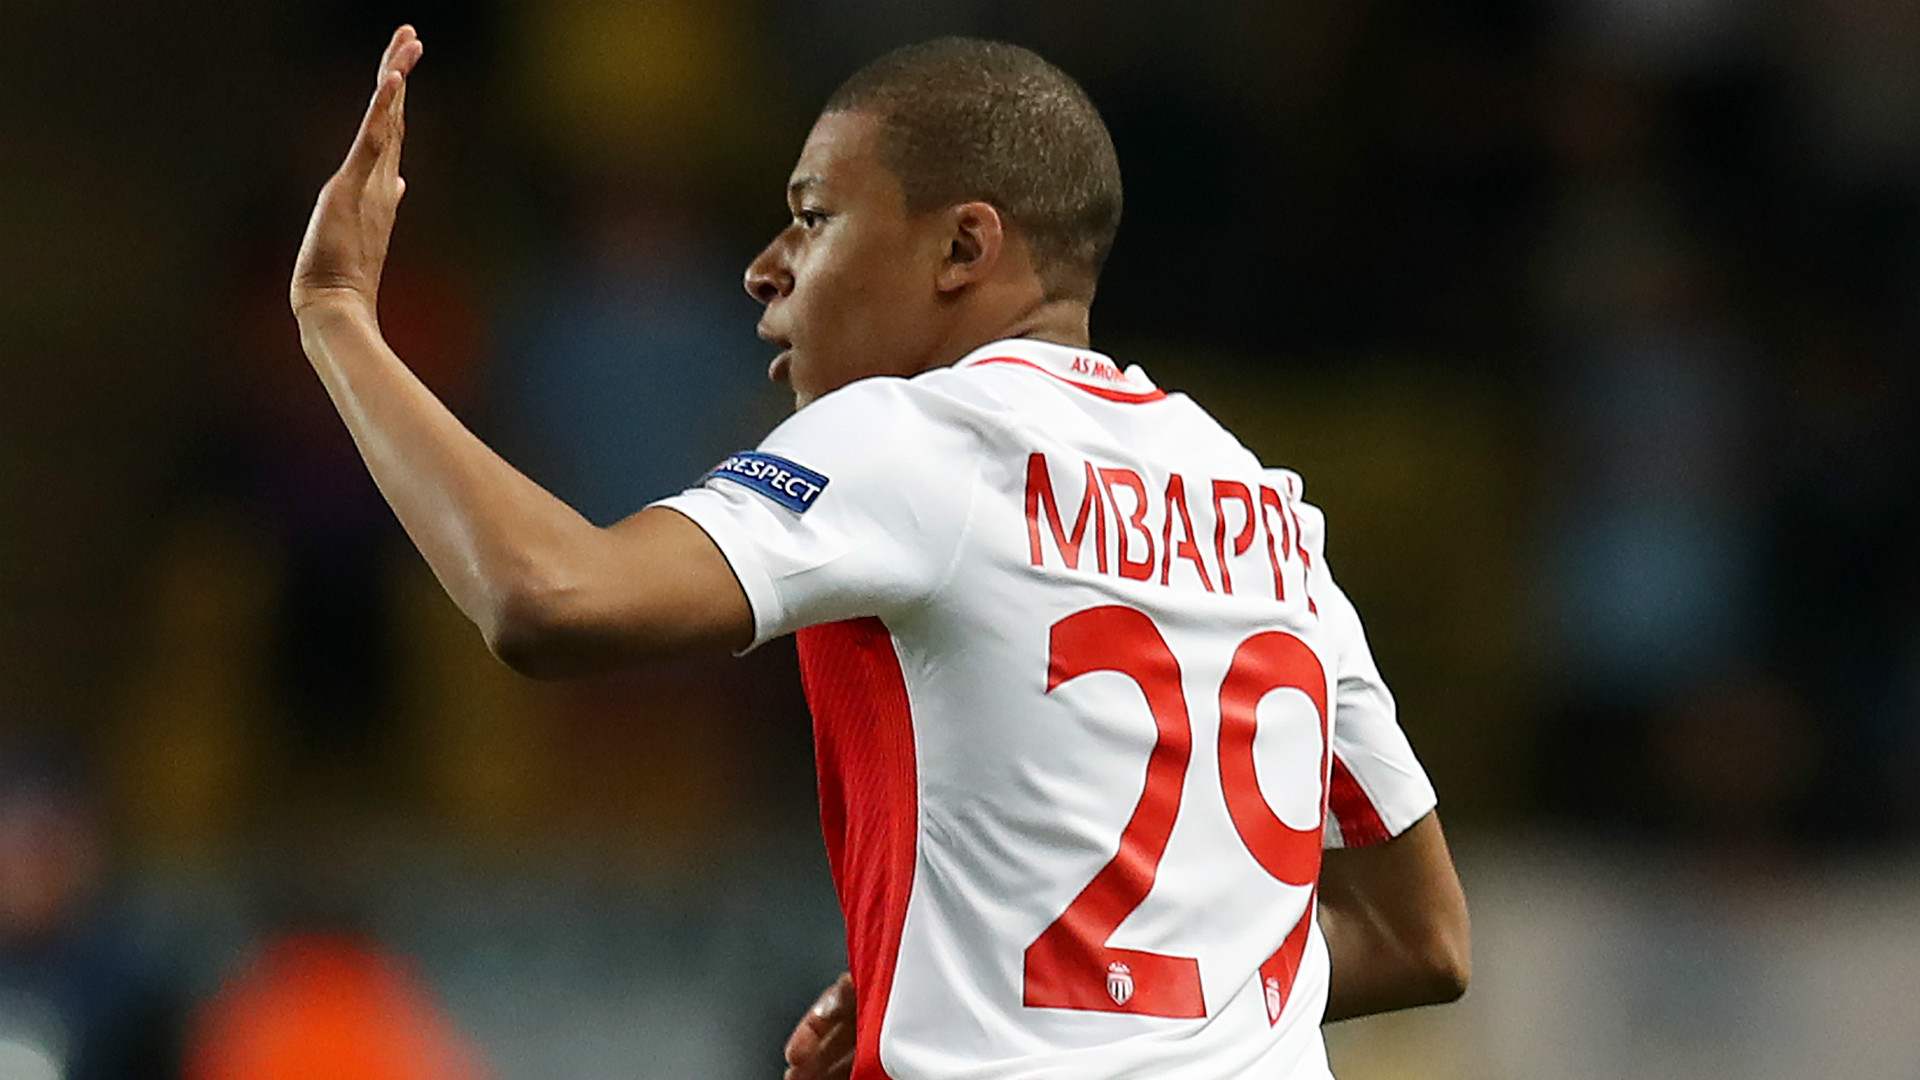 kylian mbappe - photo #15